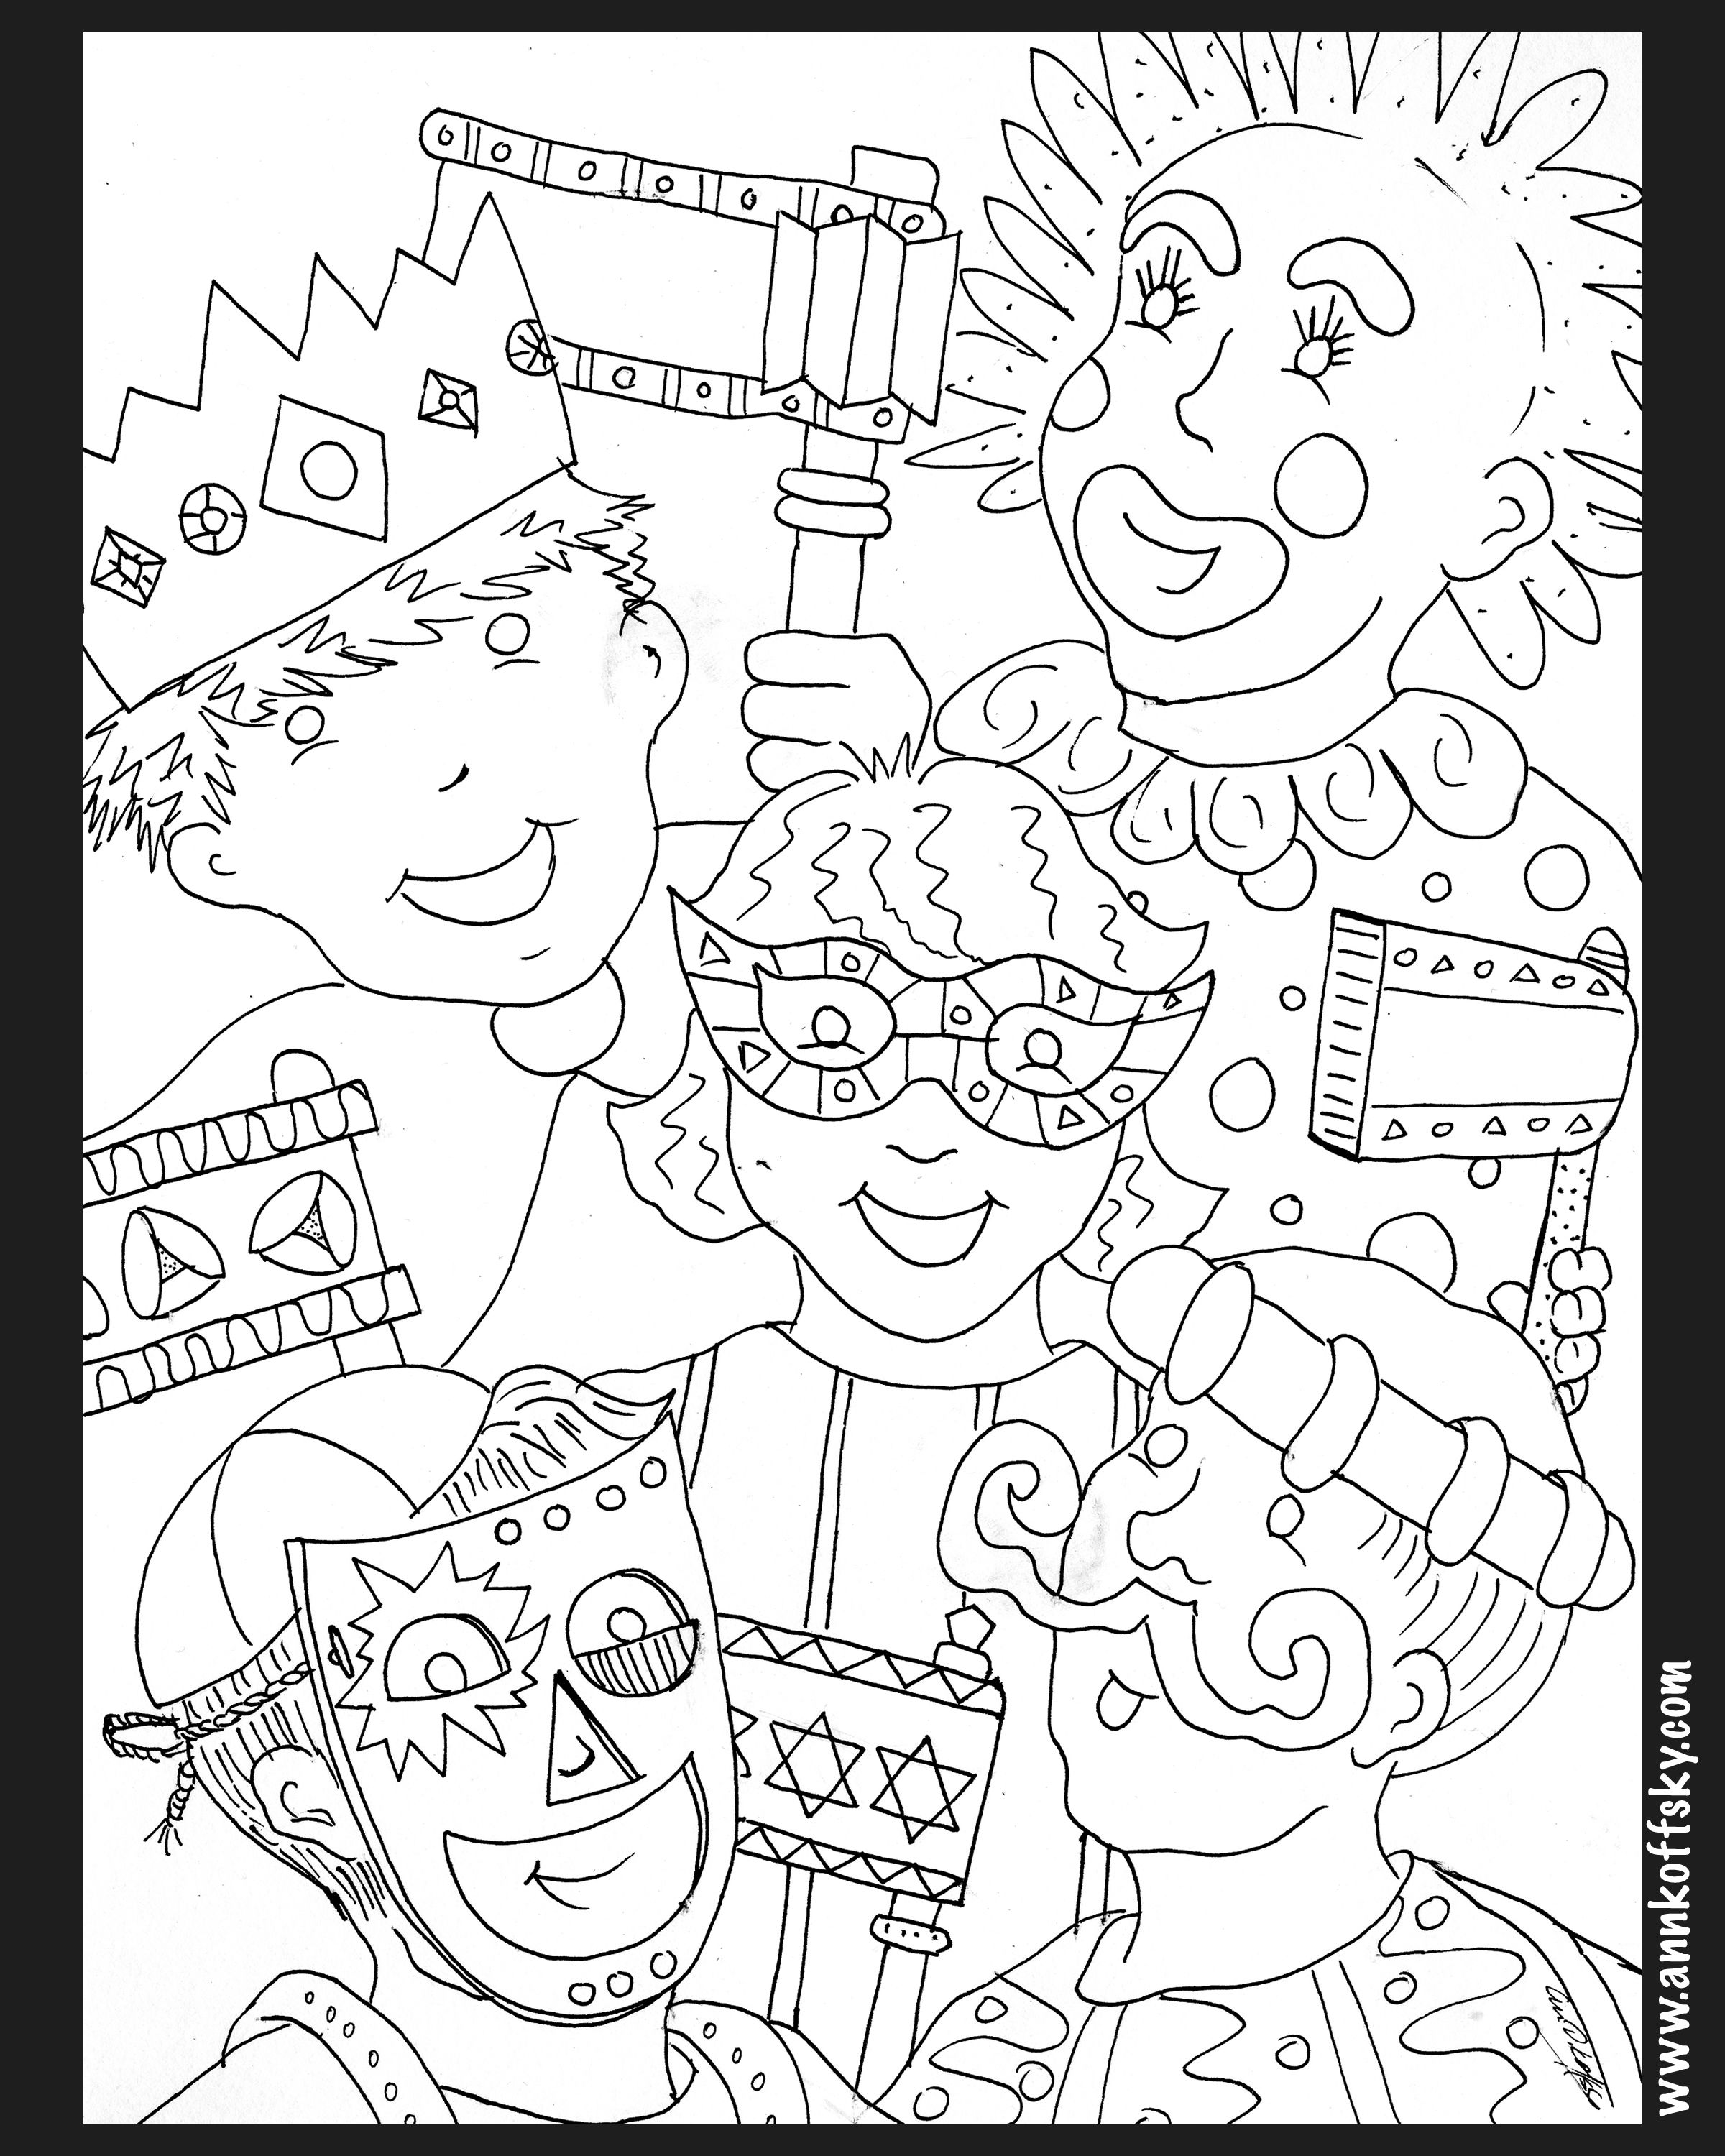 Purim Coloring Page With Images